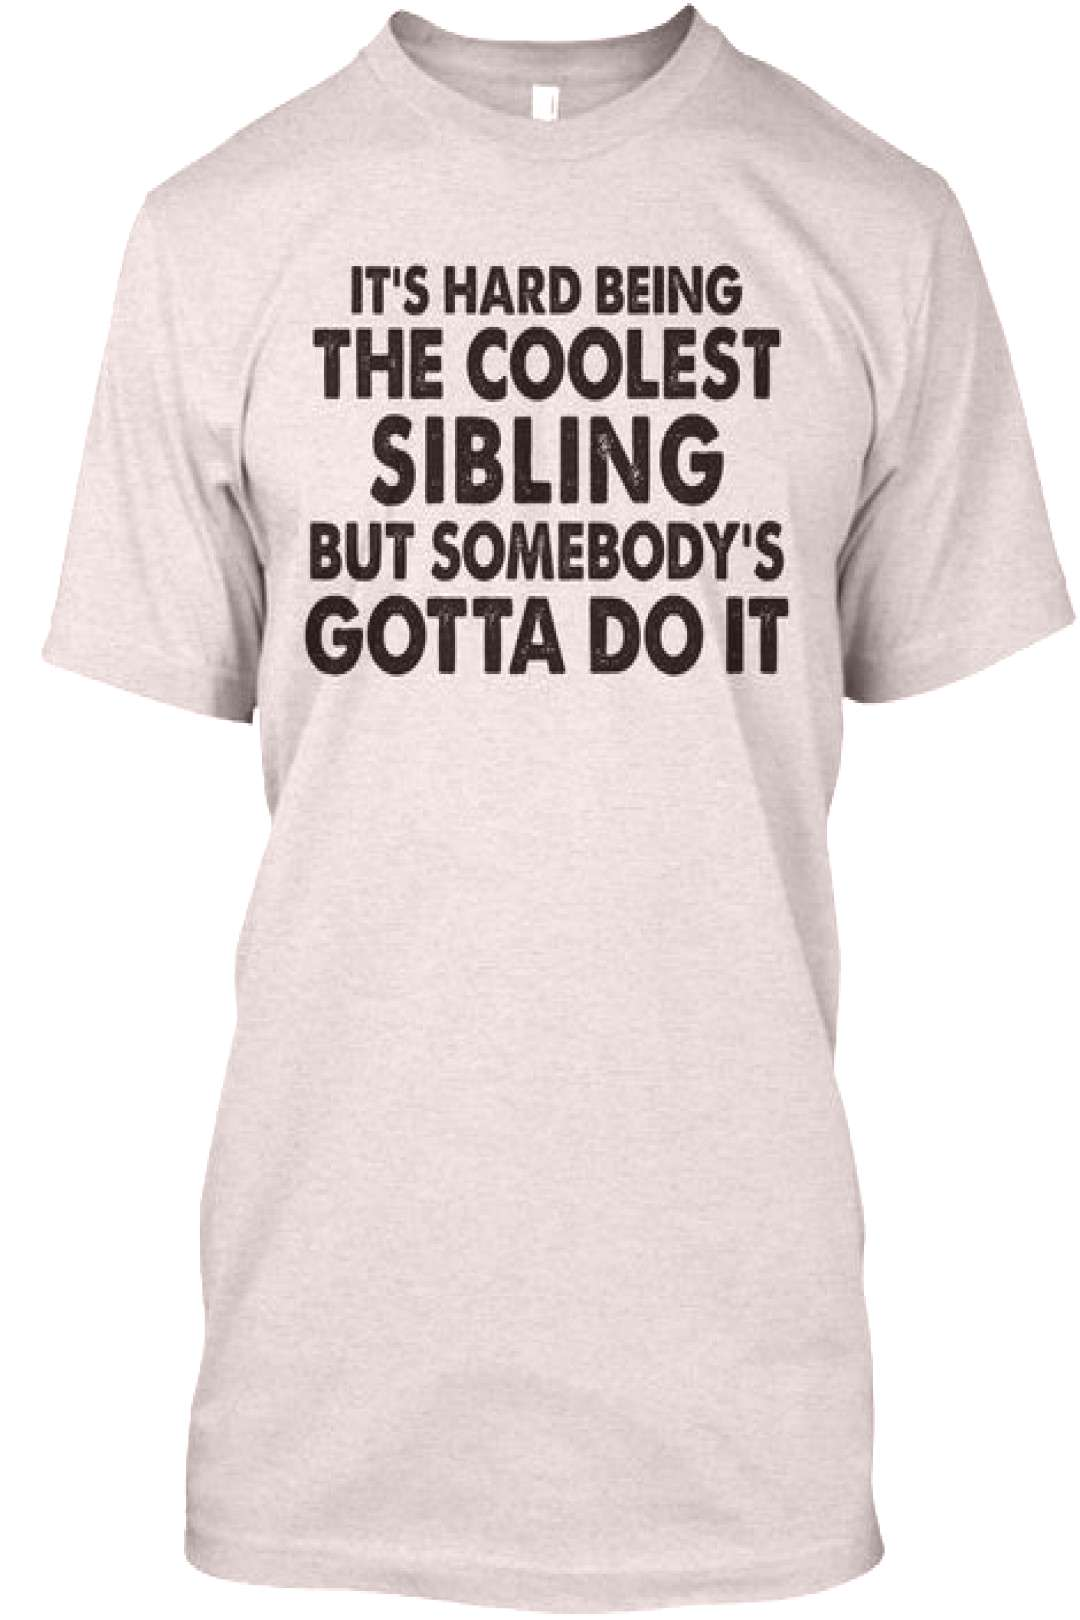 It's Hard Being The coolest Sibling T-Shirt TM